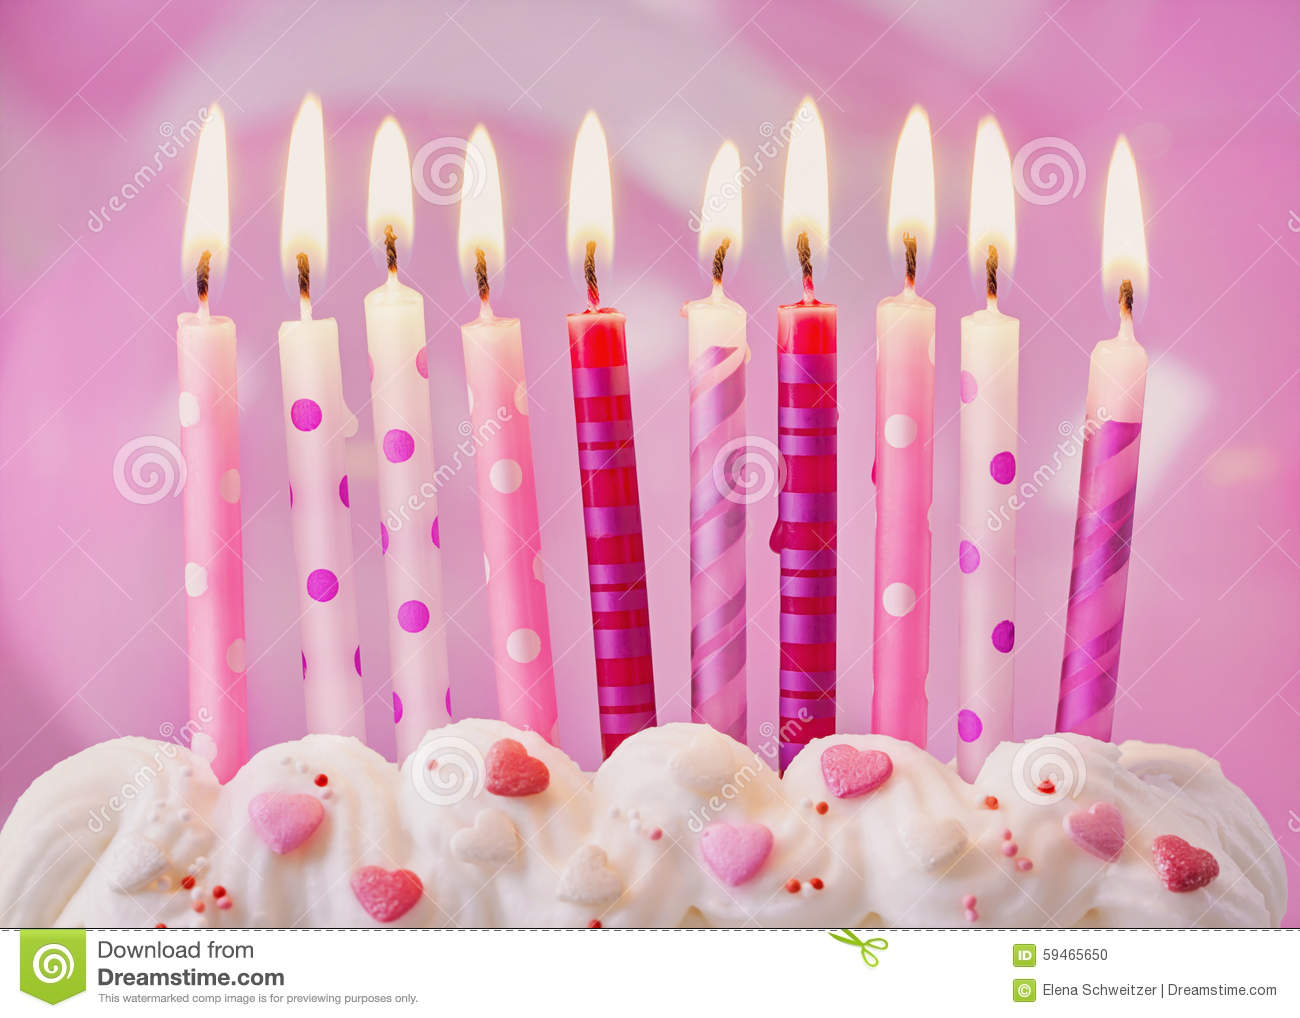 Birthday Cake Roses Pink Balloons Images